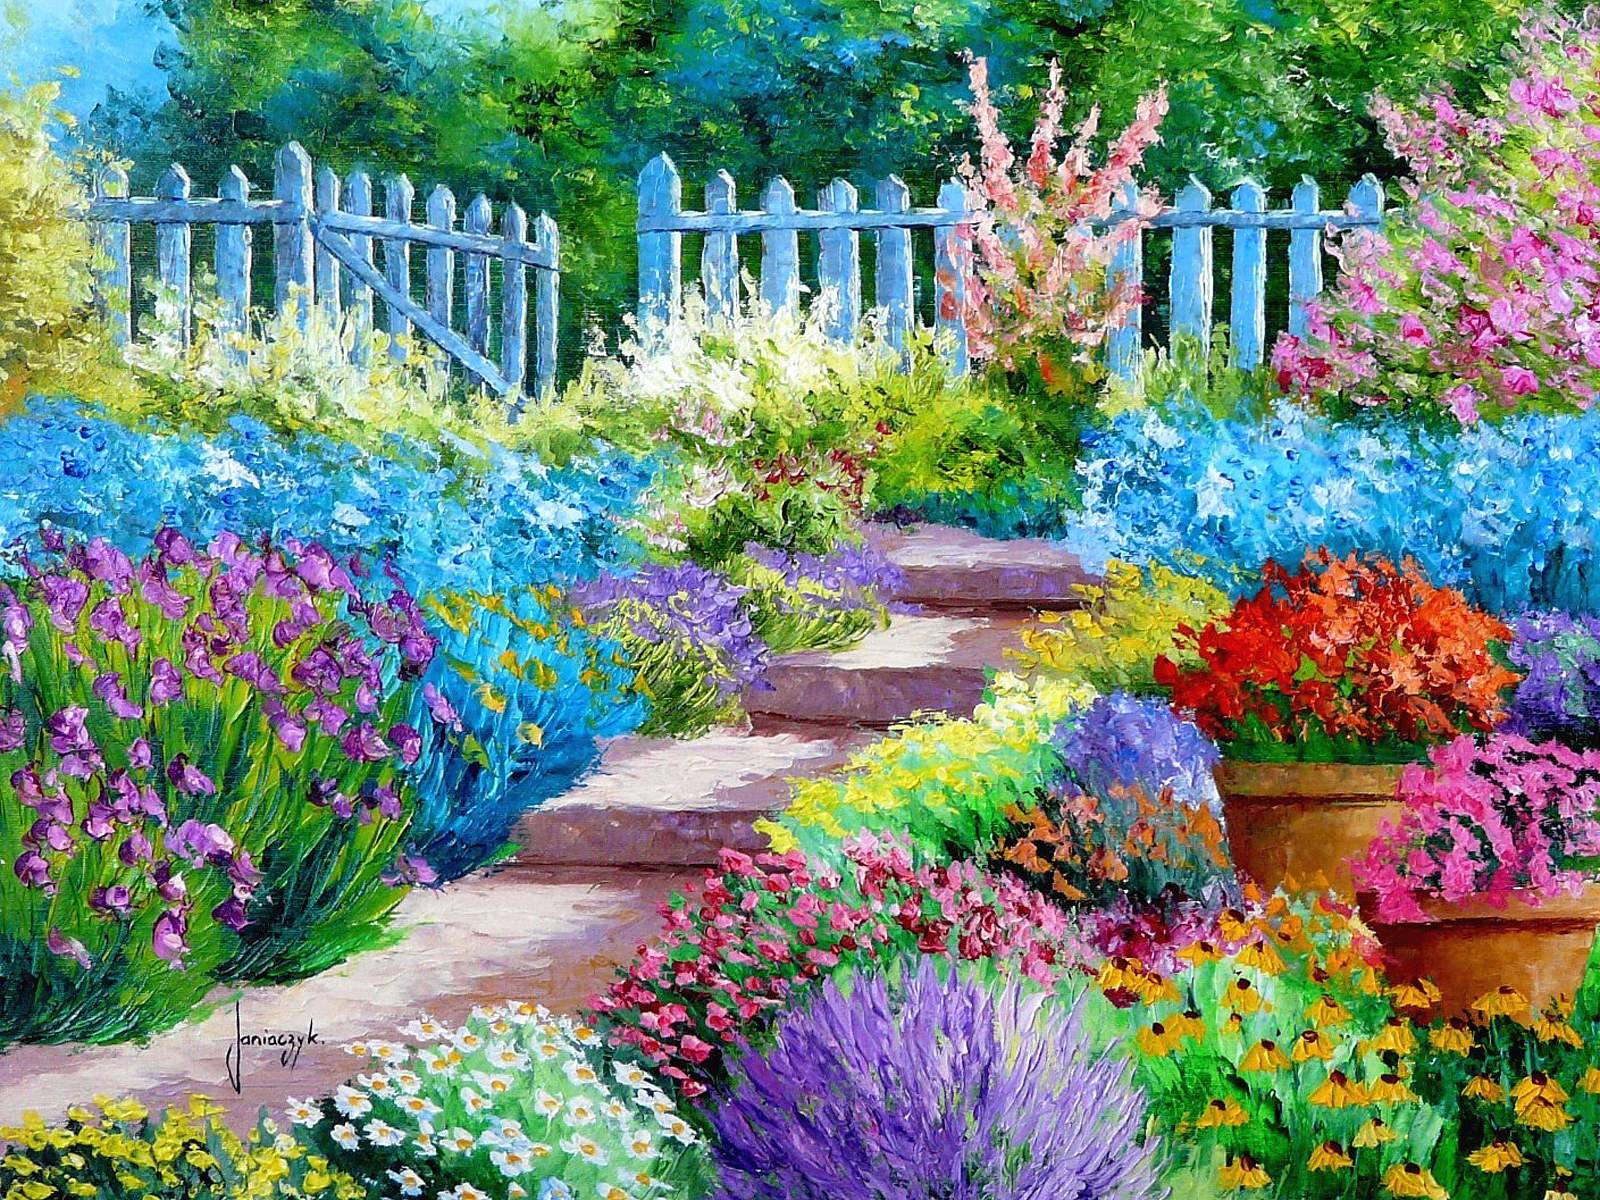 Hd wallpaper garden - Flower Garden Painting Art Wallpaper 1600x1200 176827